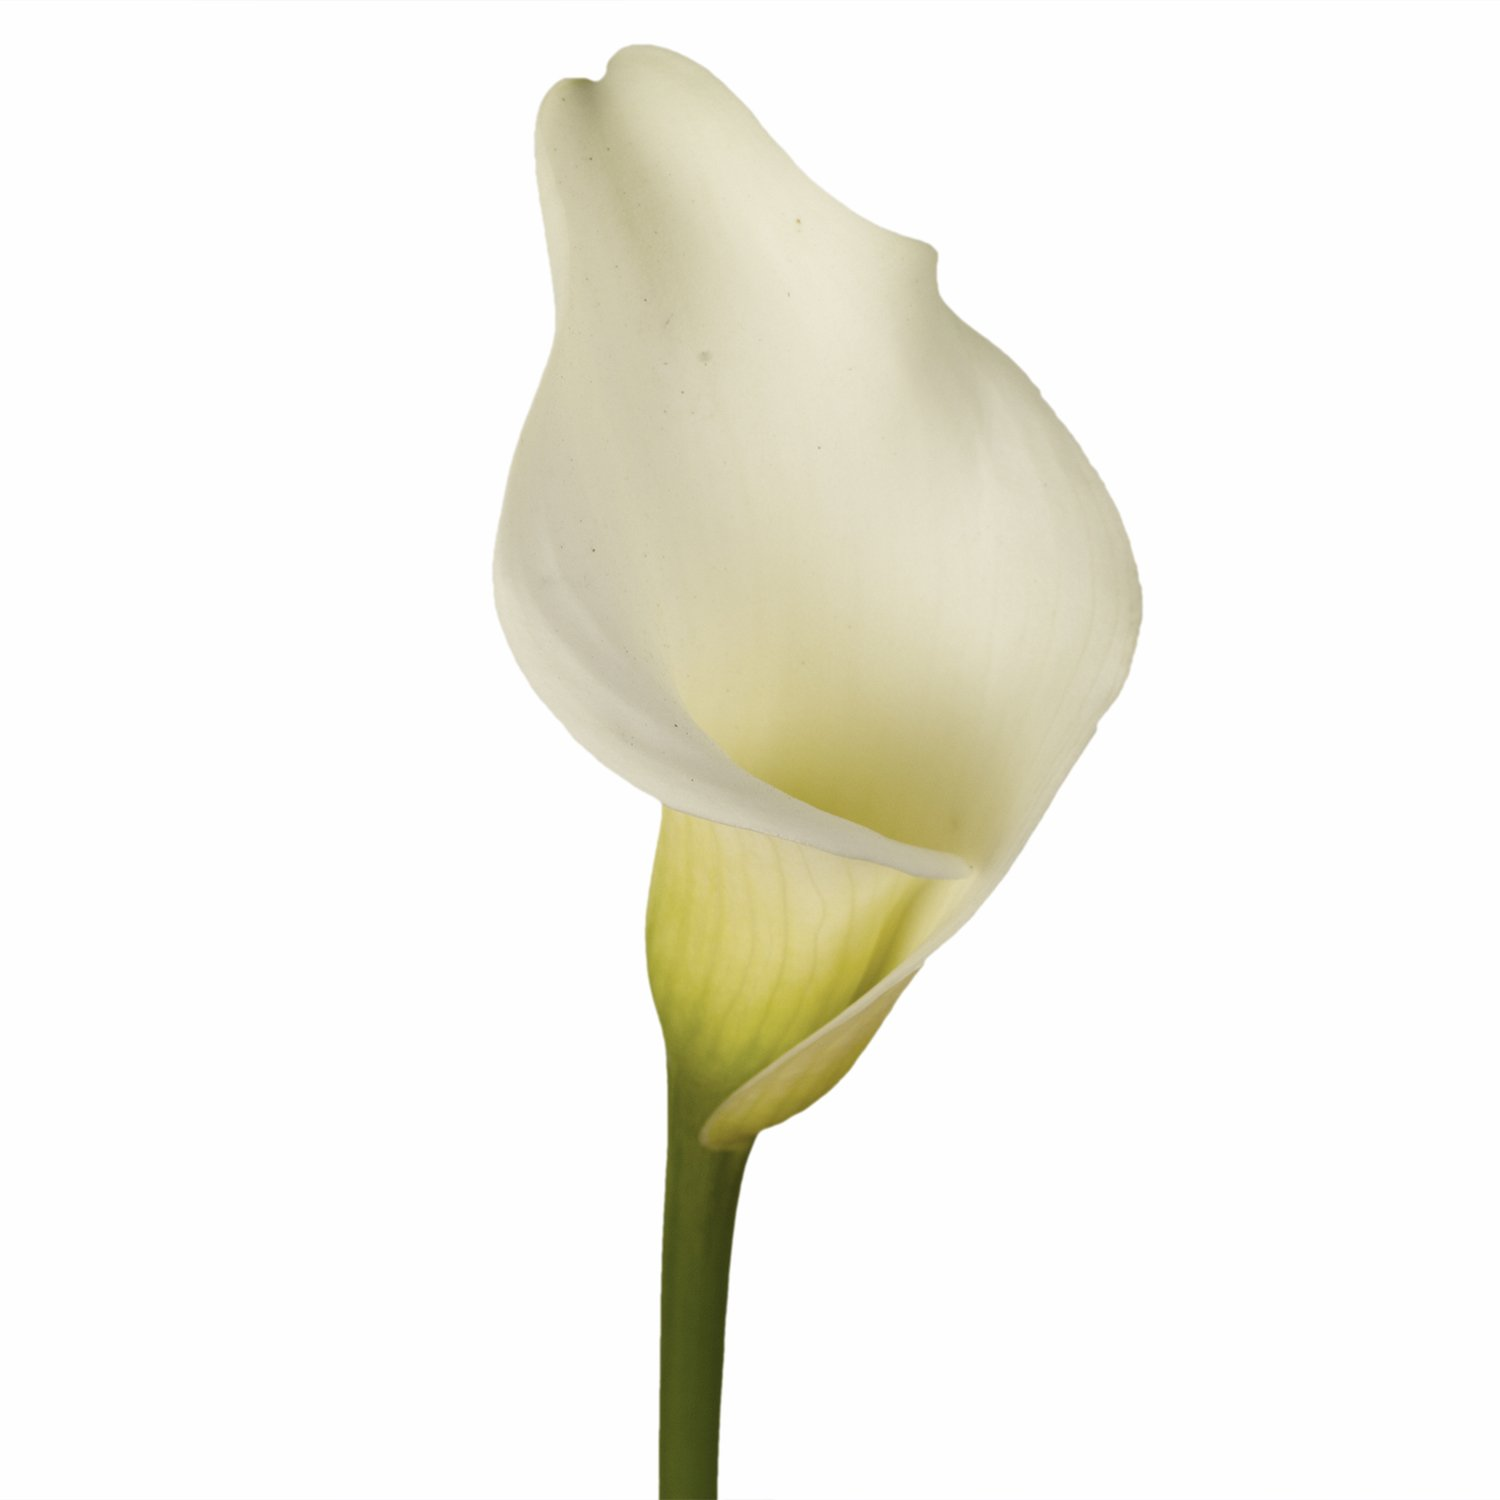 GlobalRose 12 Stems of White Calla Lilies - Fresh Flowers for Delivery by GlobalRose